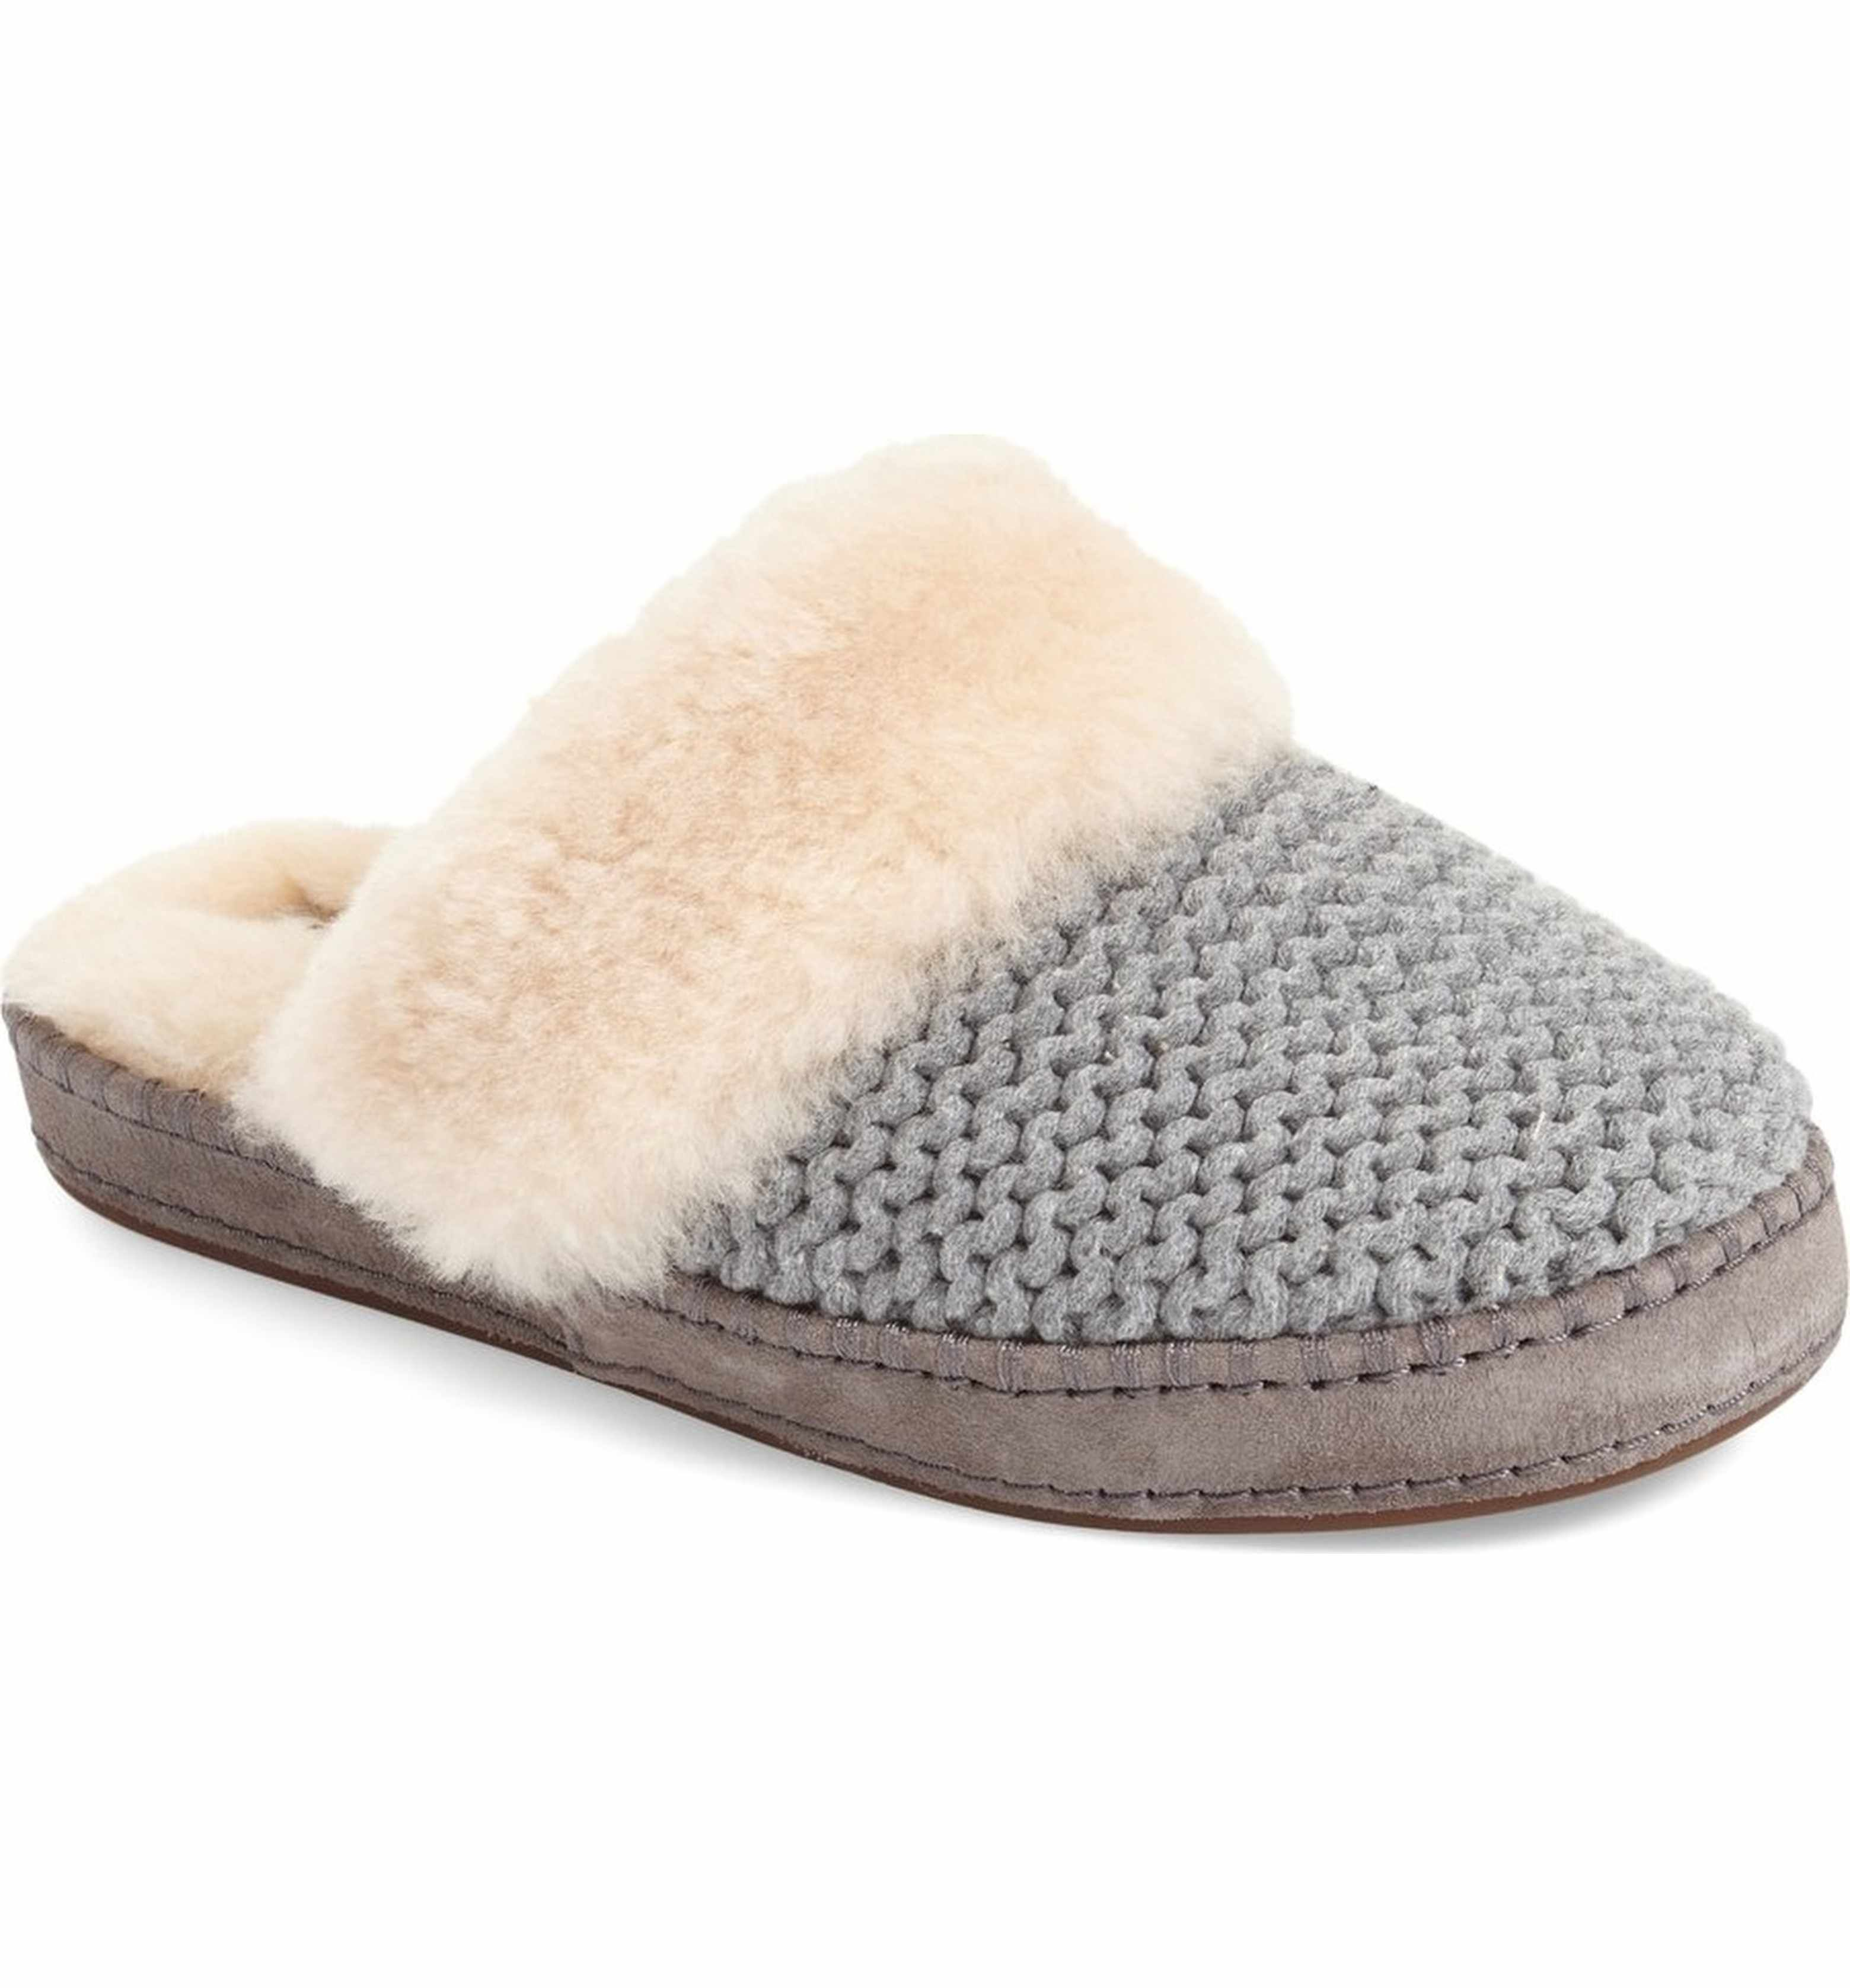 2018 New Cheap Online For Sale Cheap Price From China UGG Aira Knit Scuff(Women's) -Cream New Styles Cheap Online Cheap Official Online F6XUmEo